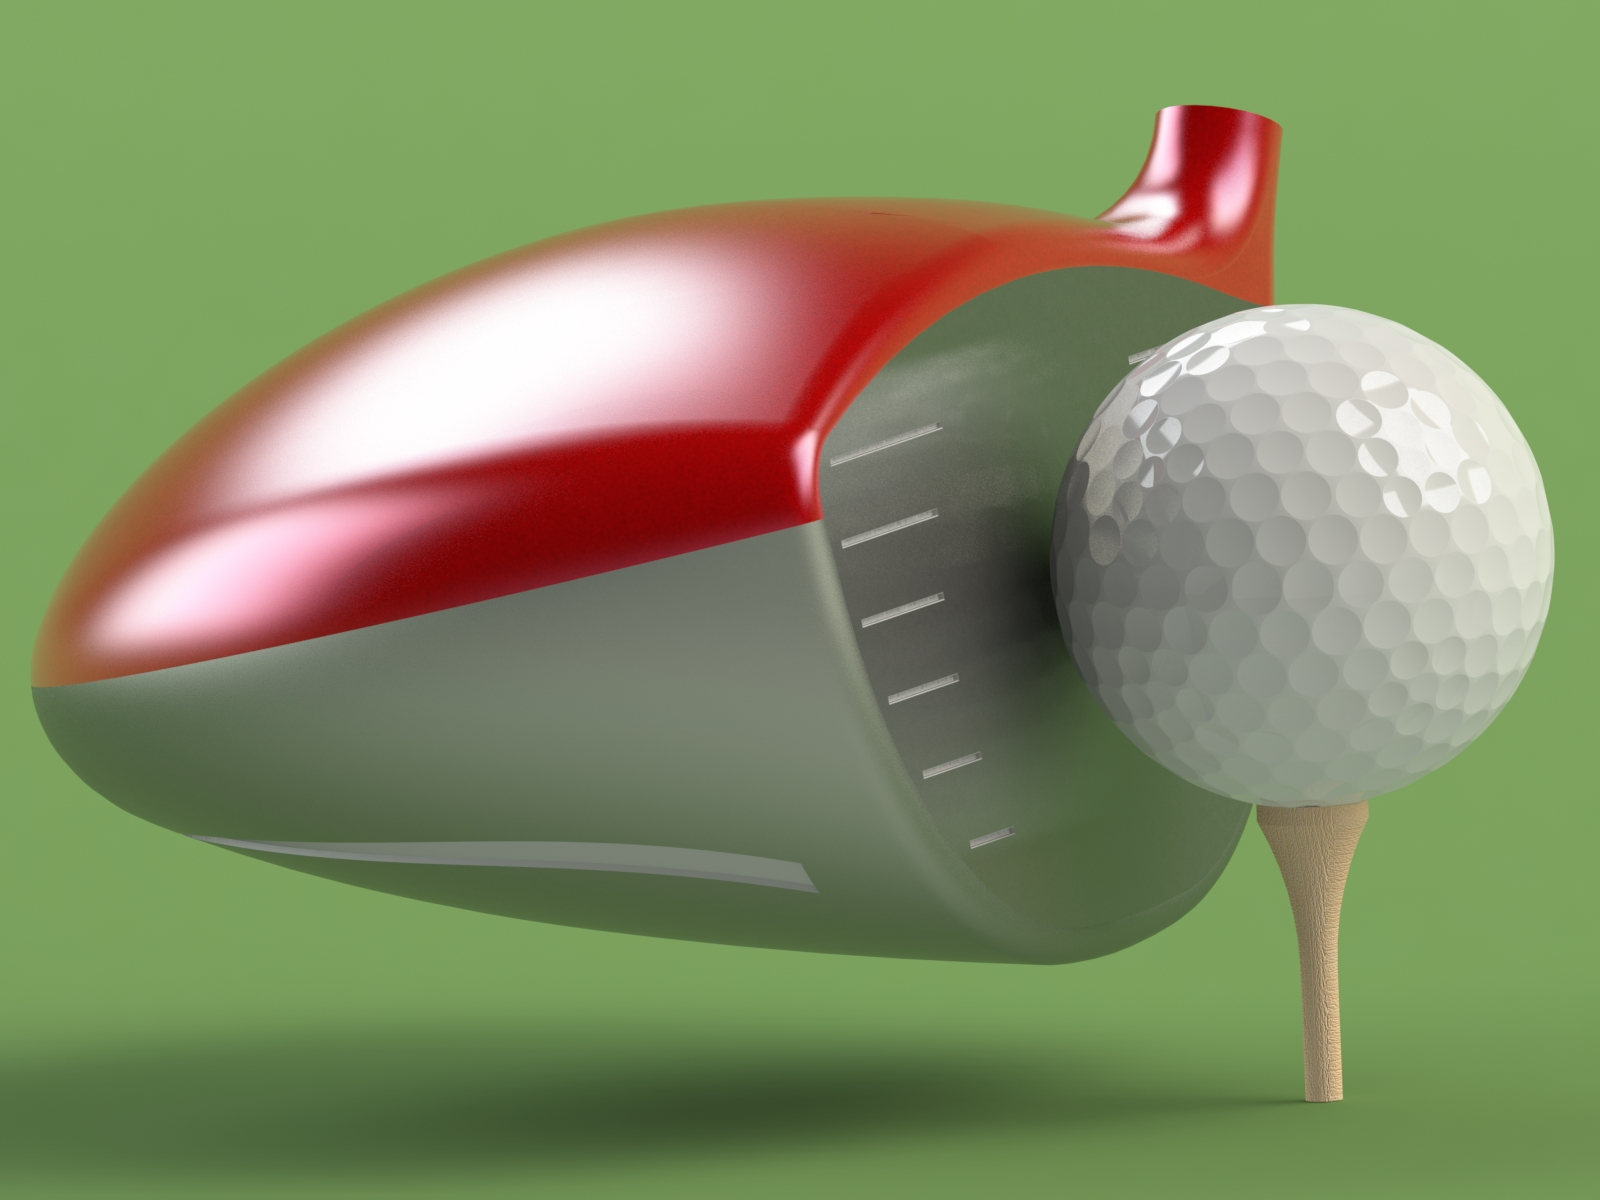 Rendered golf club and golf ball